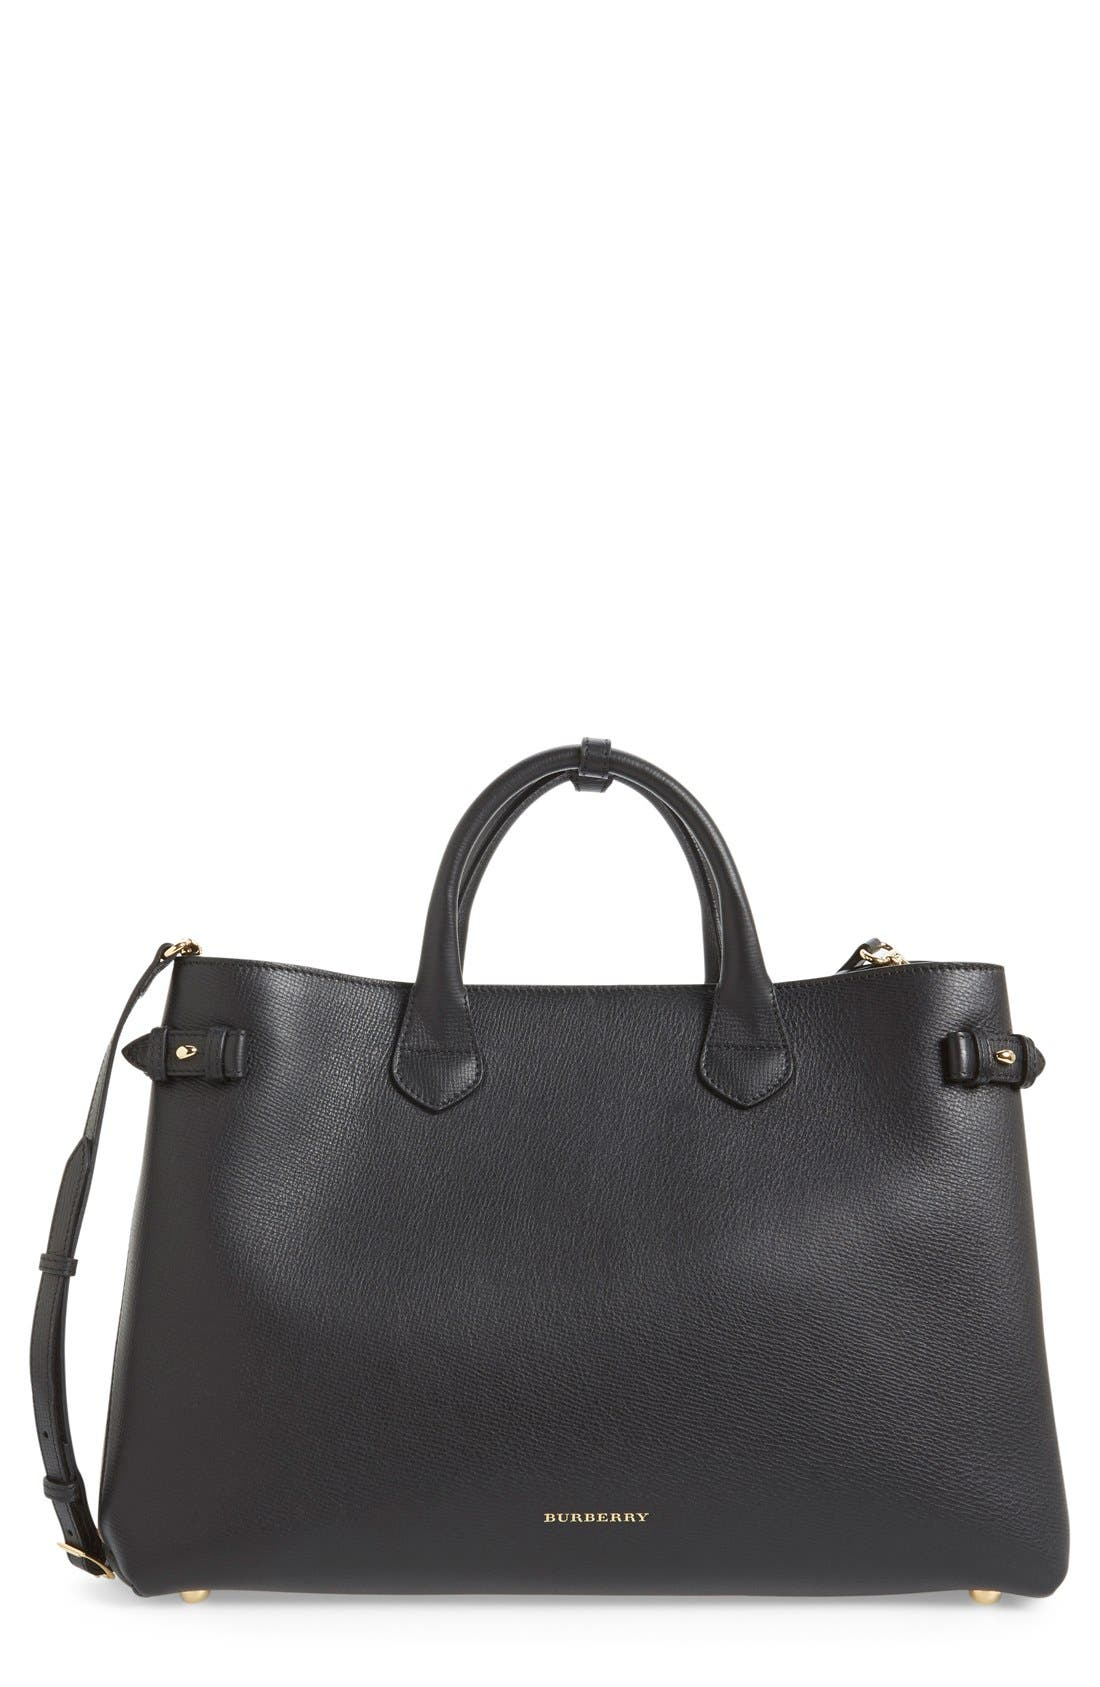 Burberry 'Large Banner' House Check Leather Tote